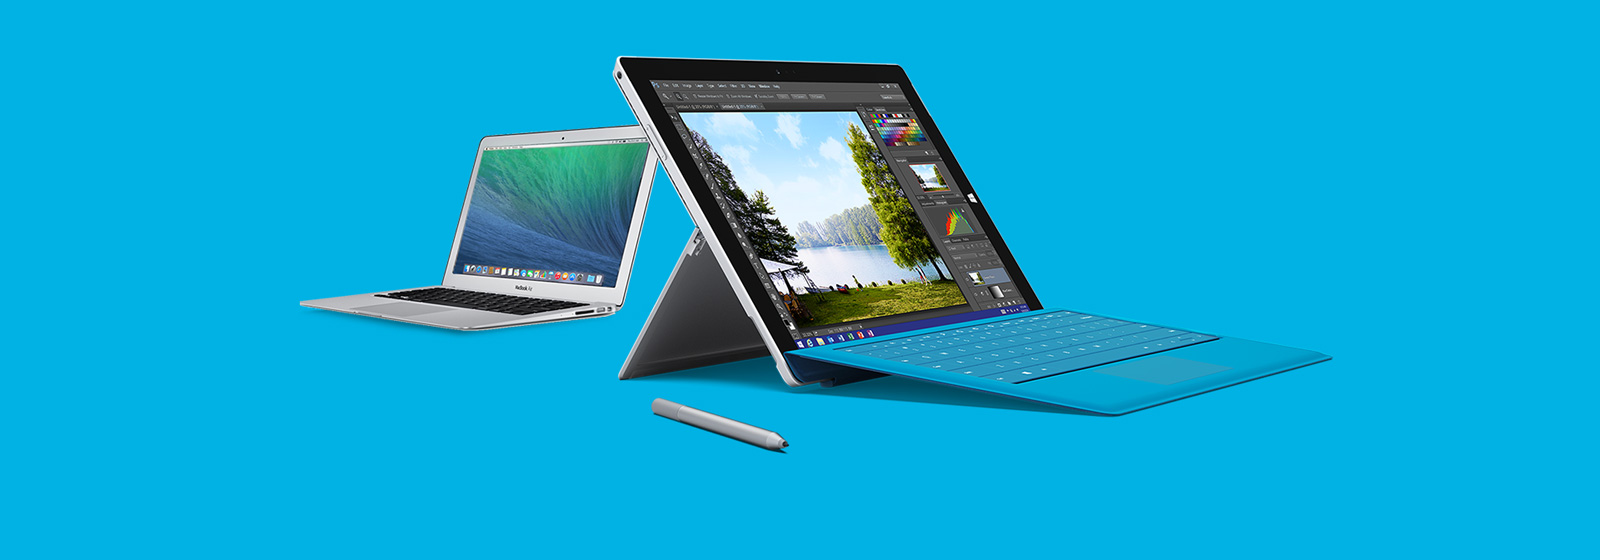 See how Surface Pro 3 stacks up against MacBook Air.